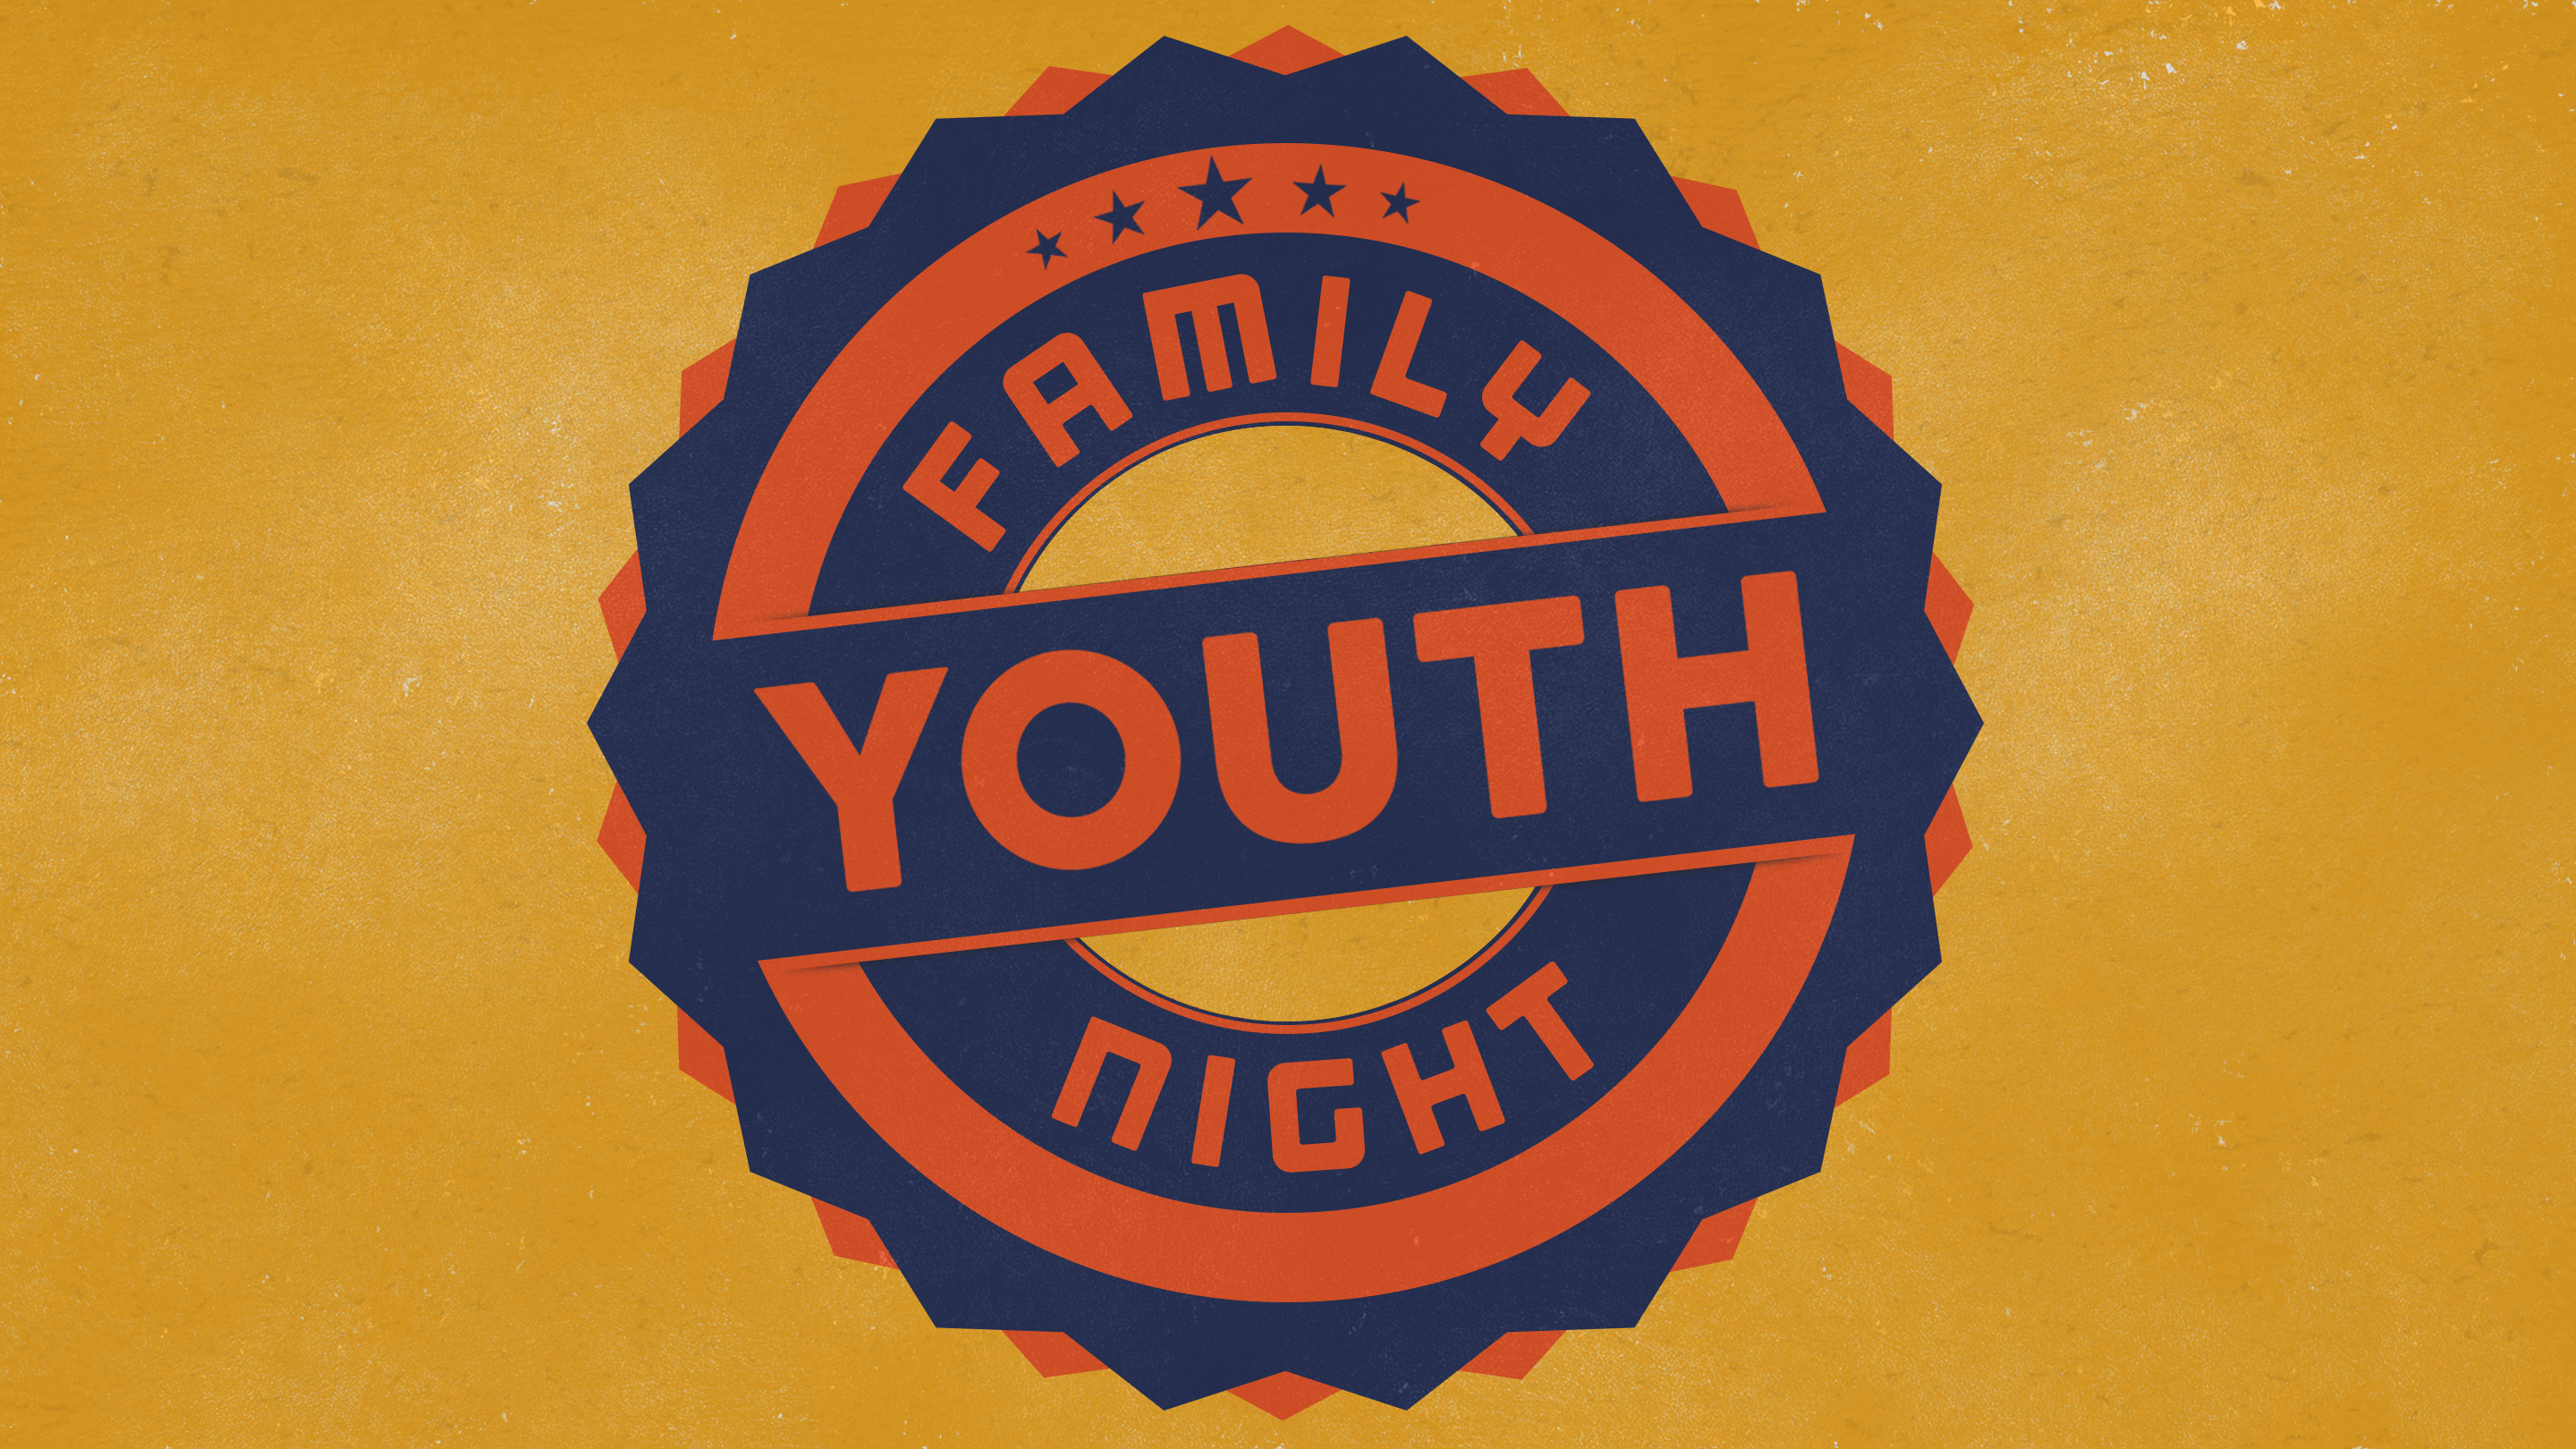 Youth family night